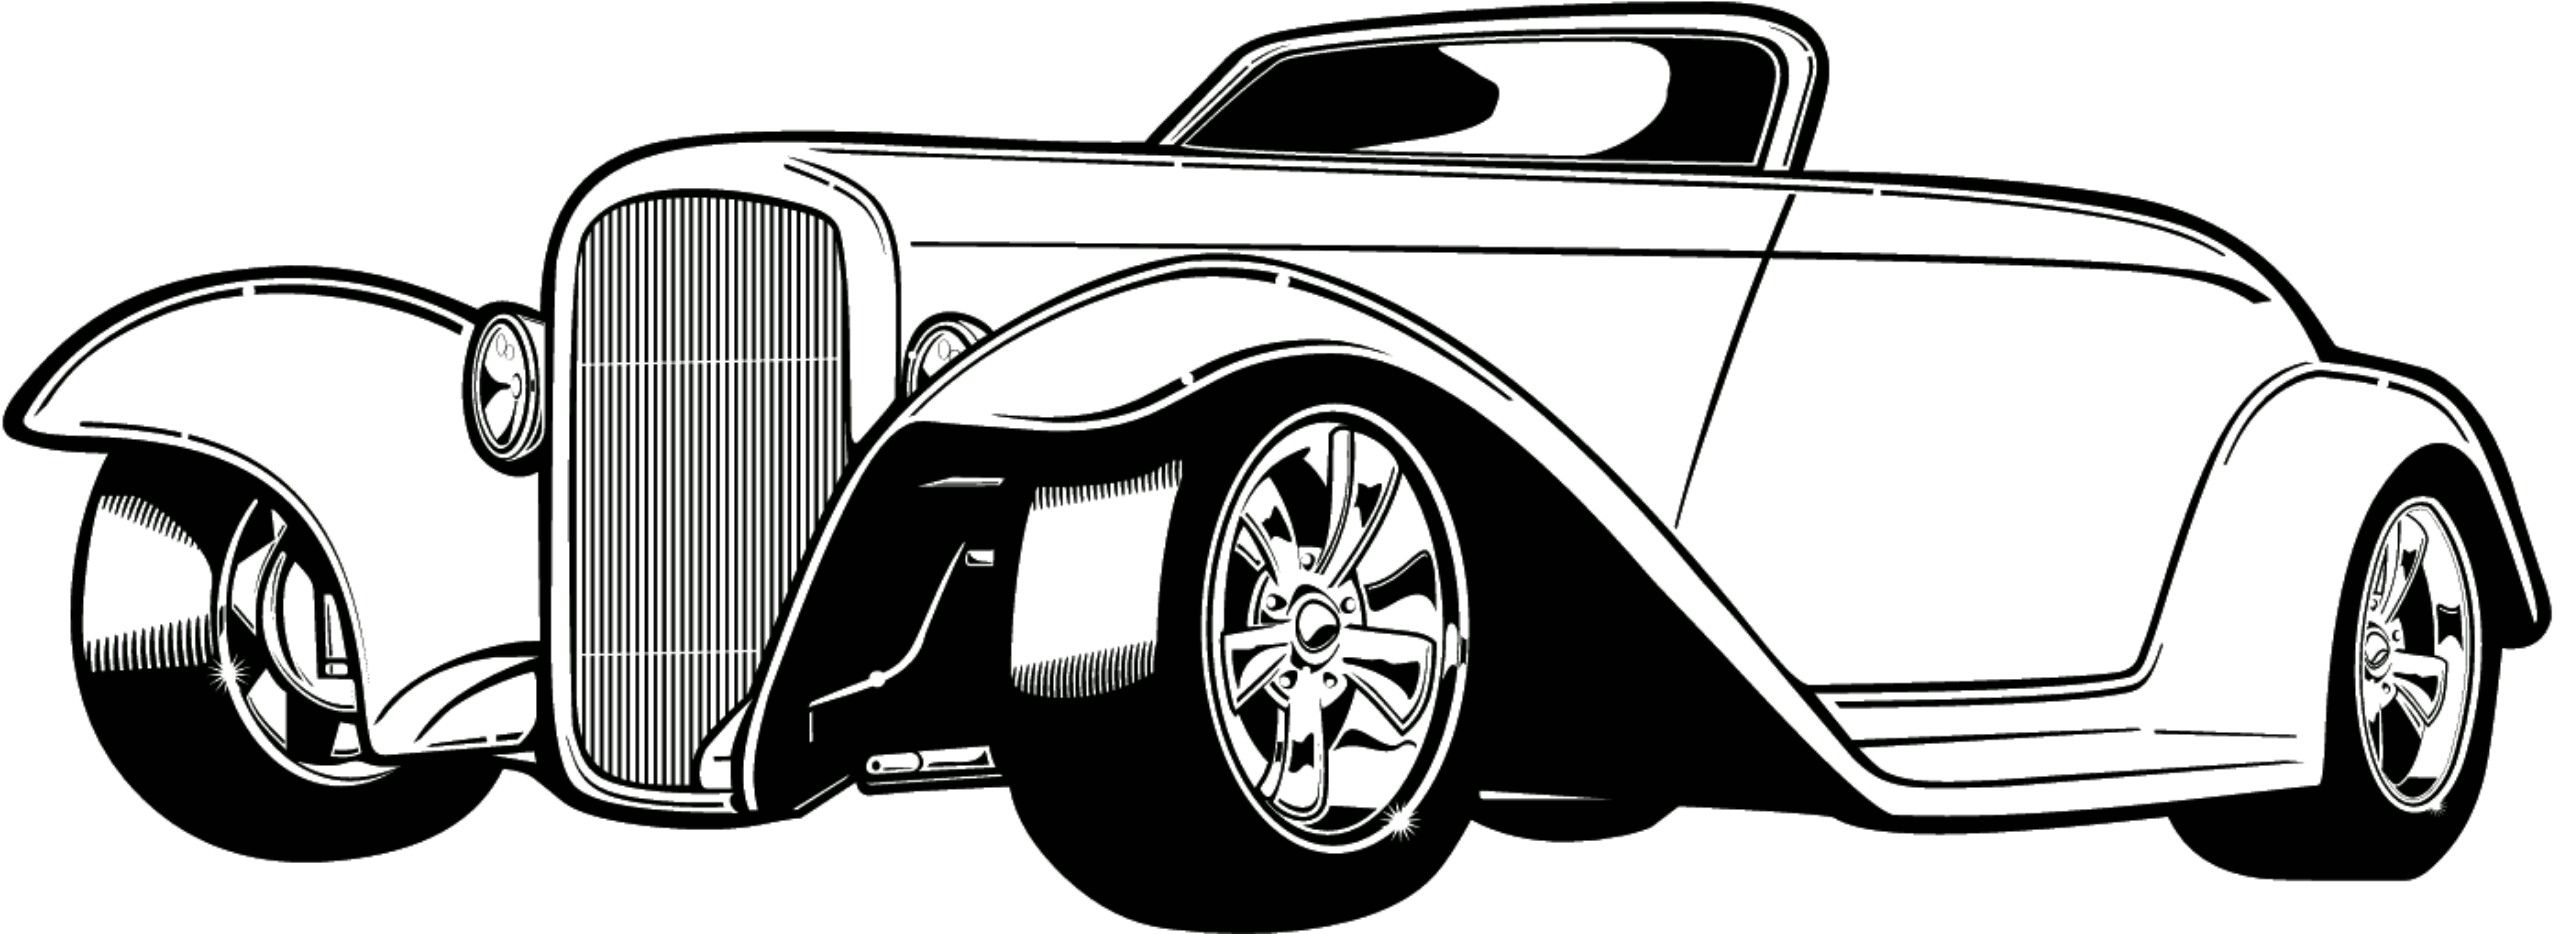 cars coloring pages adult coloring pages hot rod cars hot rods line [ 2558 x 934 Pixel ]